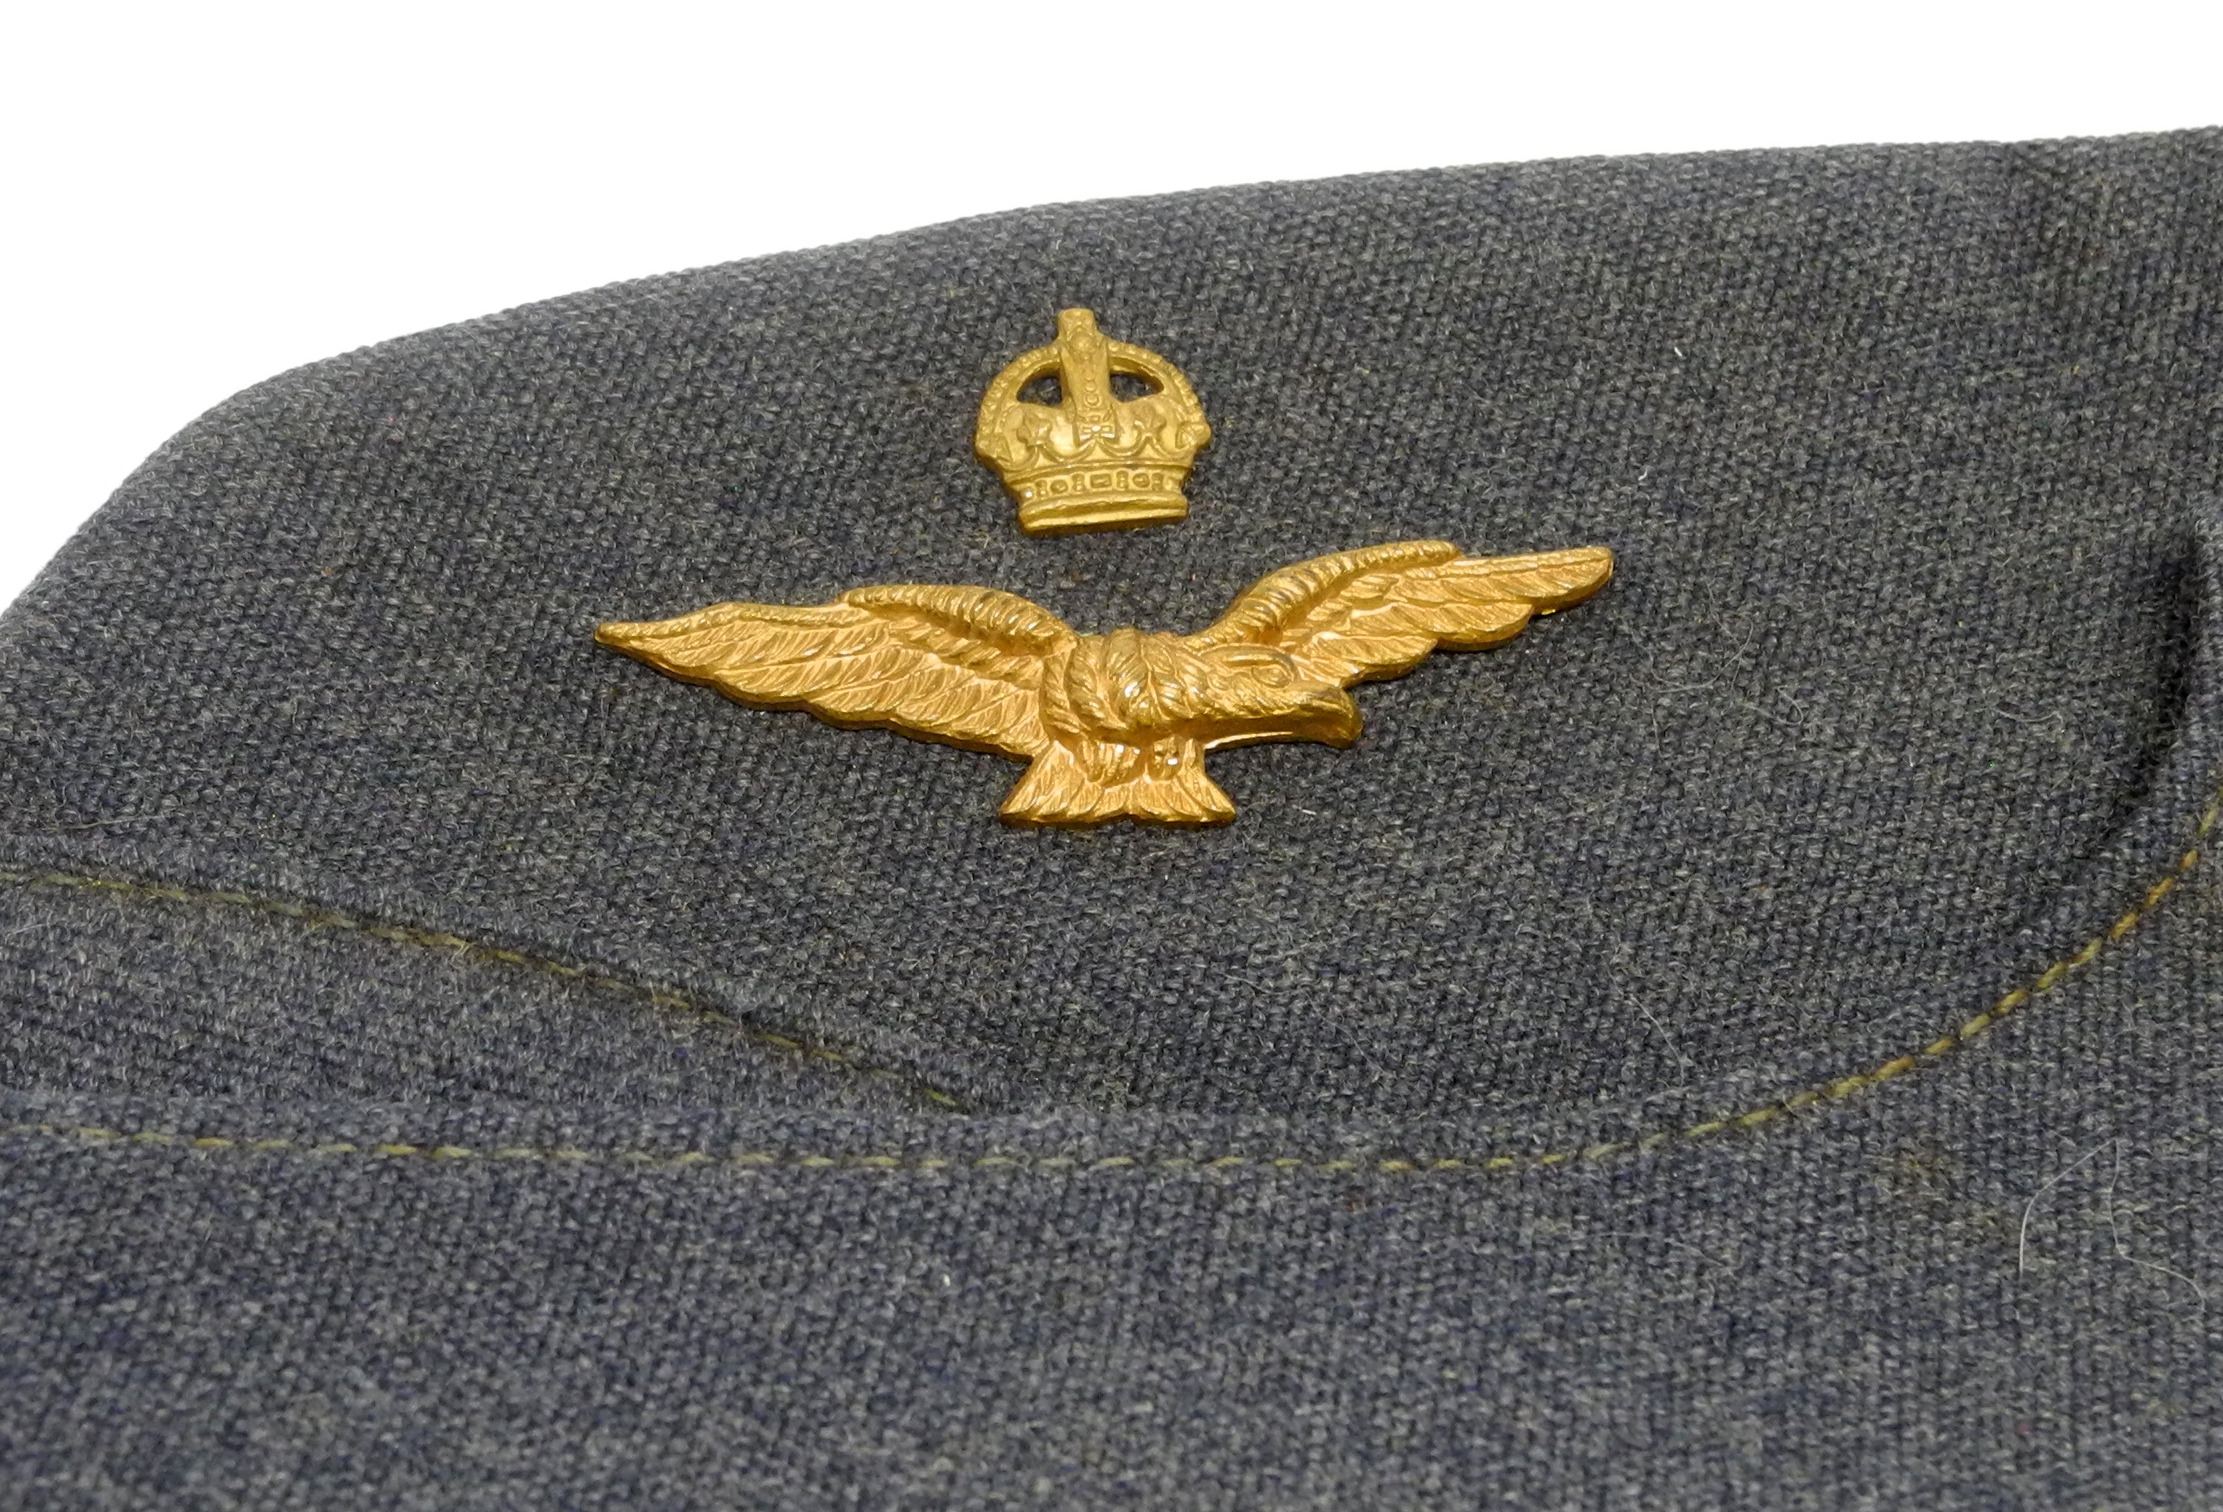 RAF officer's sidecap